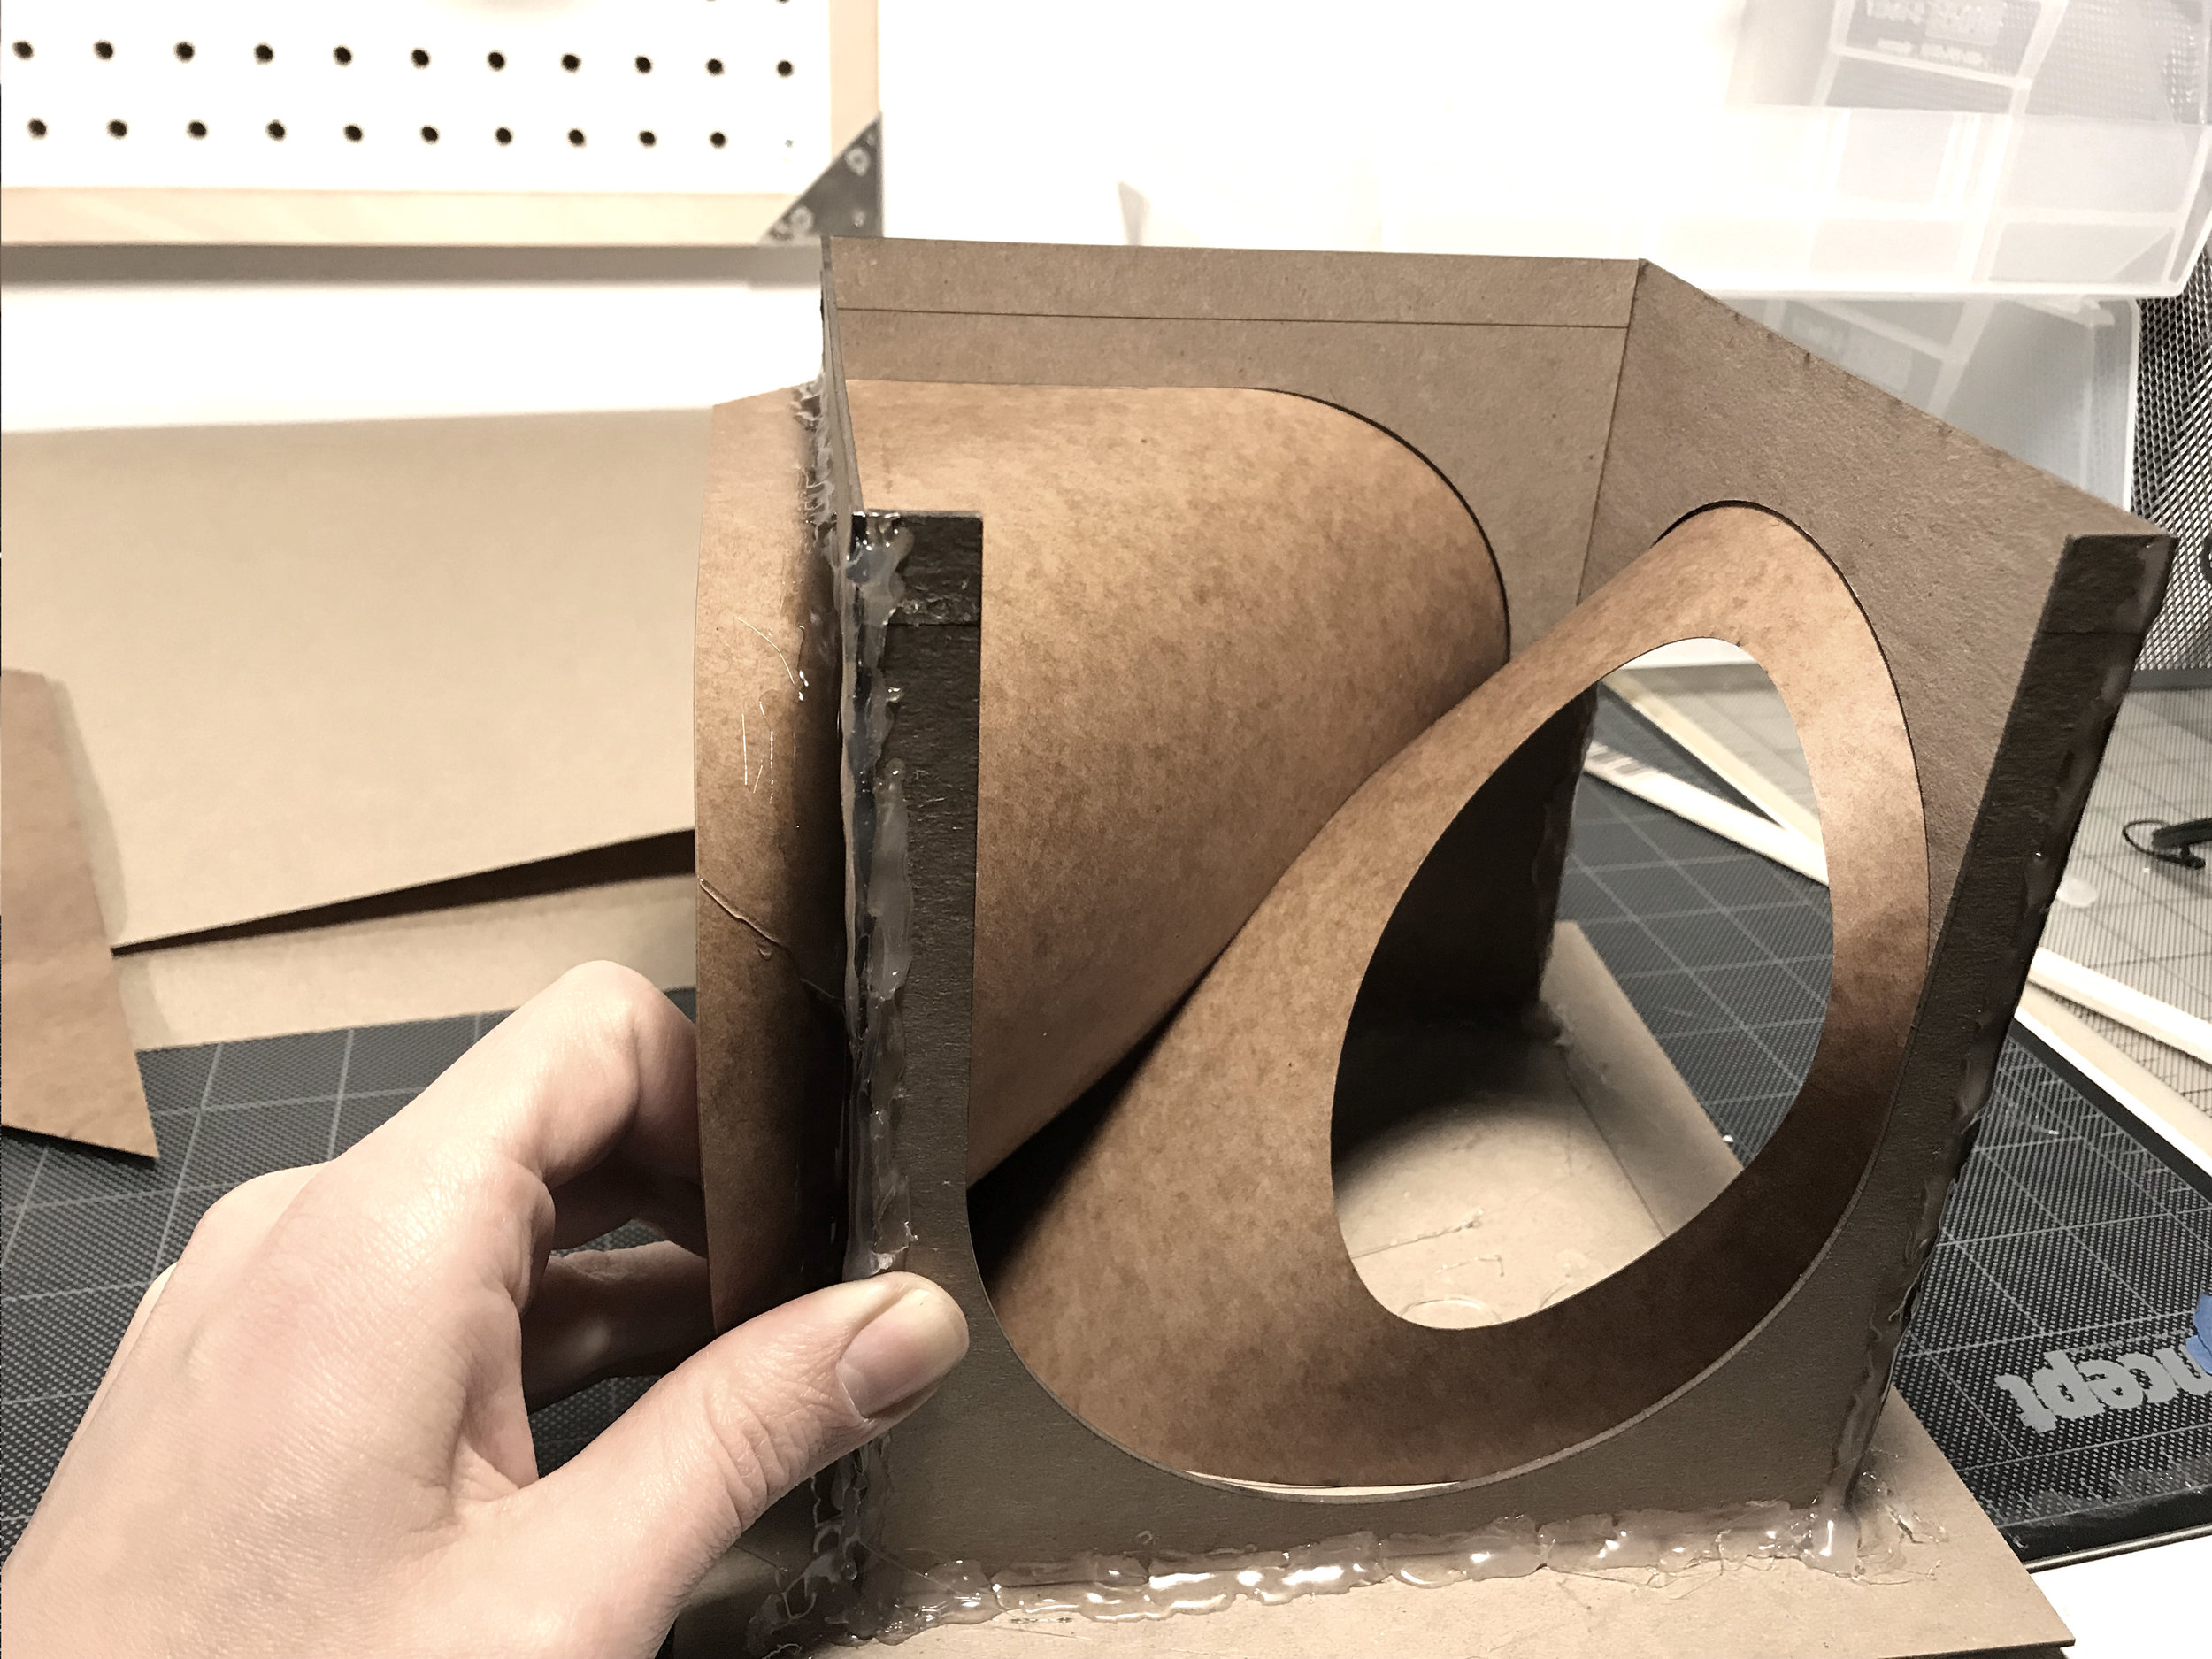 Christopher Taurasi Architecture Concrete Hollowed Cube_05.jpg